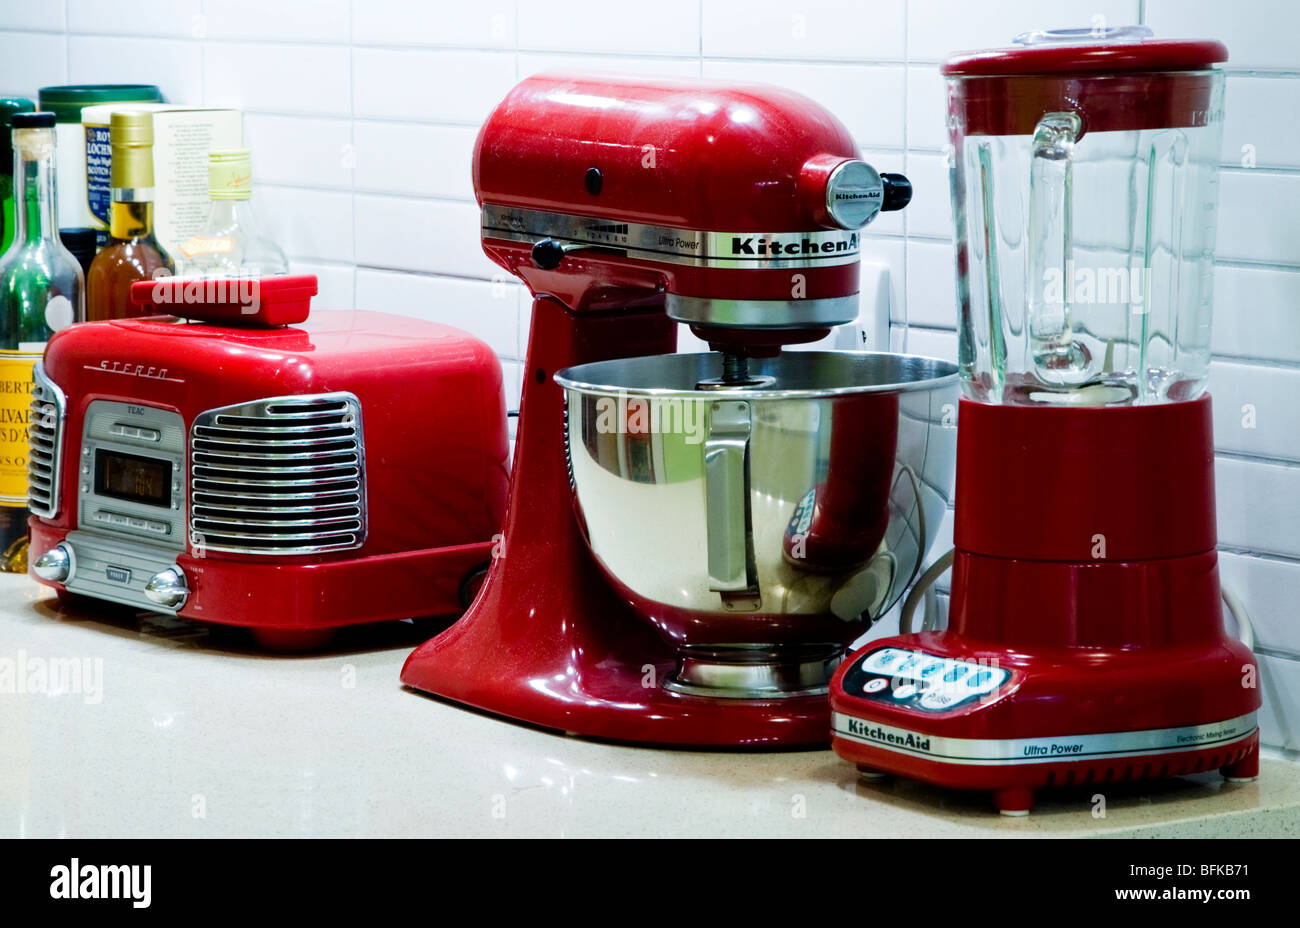 Red Retro Kitchen Appliances On A Worktop By KitchenAid